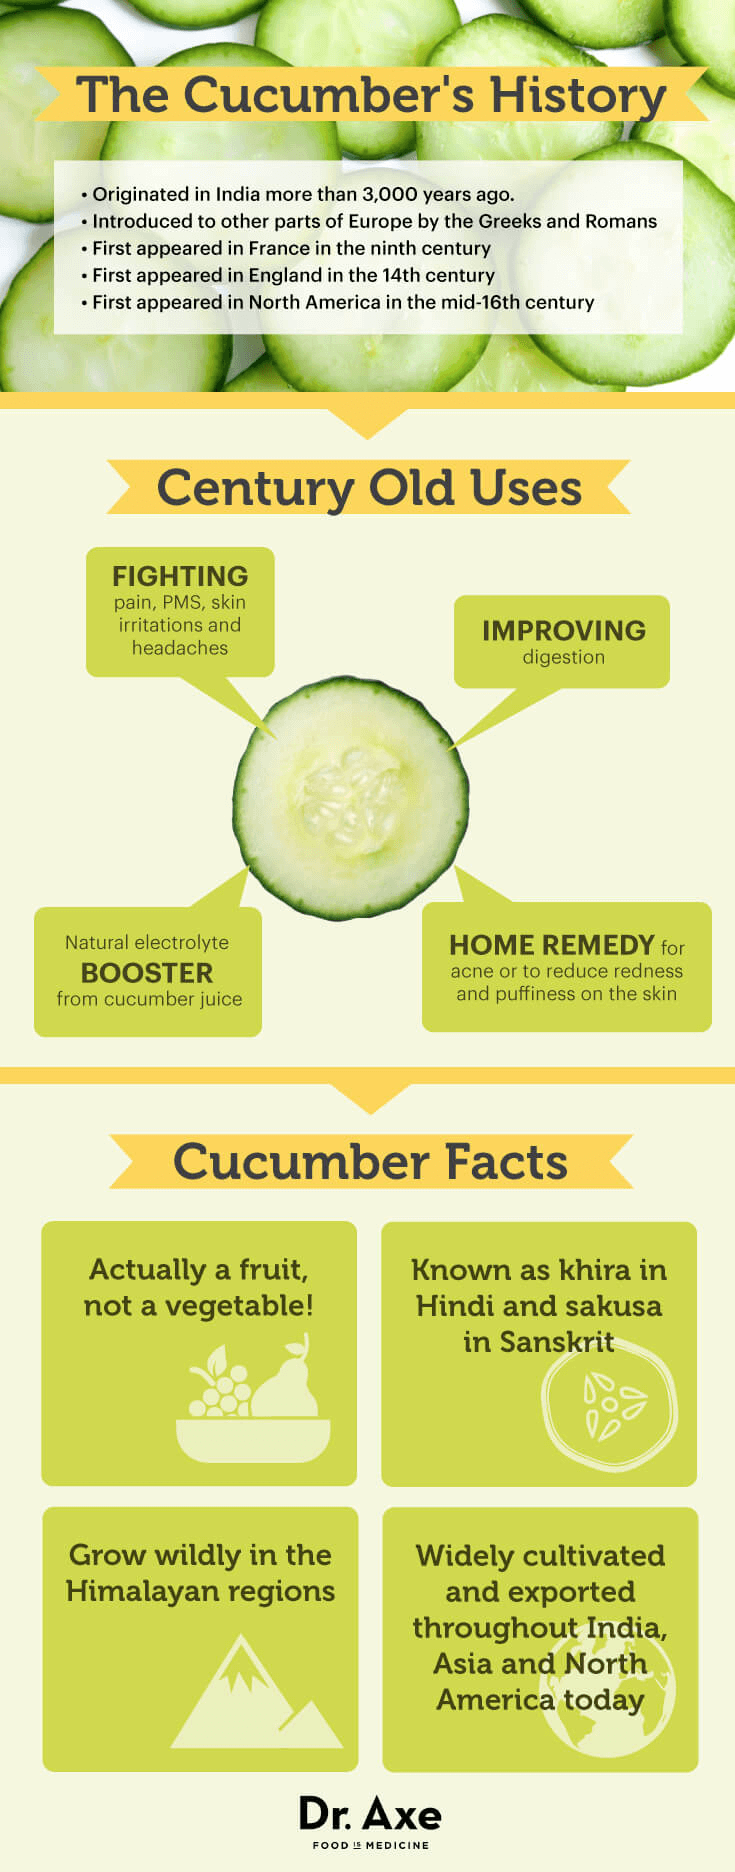 Cucumber history - Dr. Axe